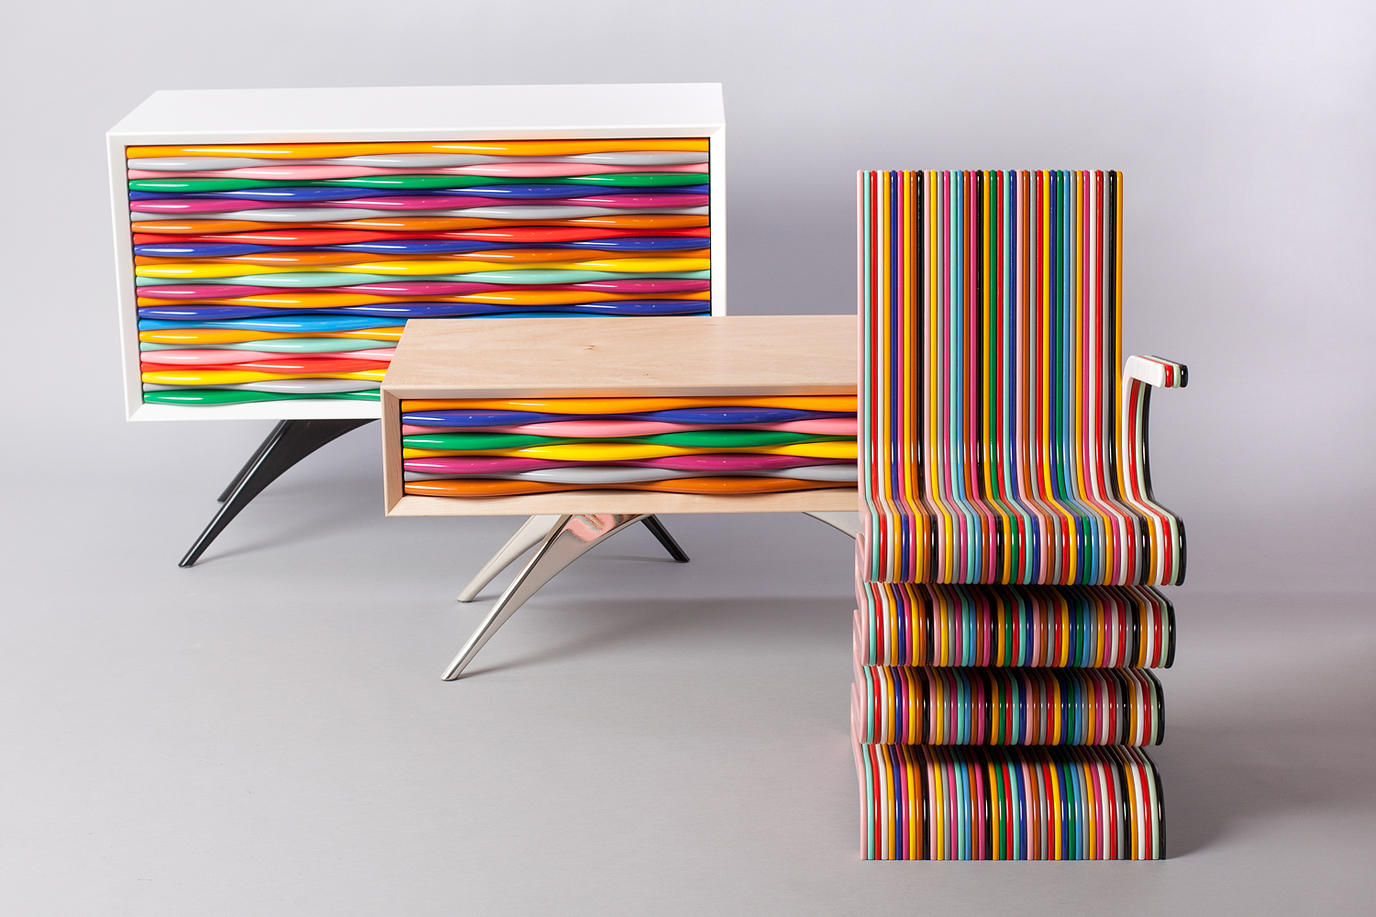 Design pop mobili multicolor di anthony hartley for Mobili di design uk